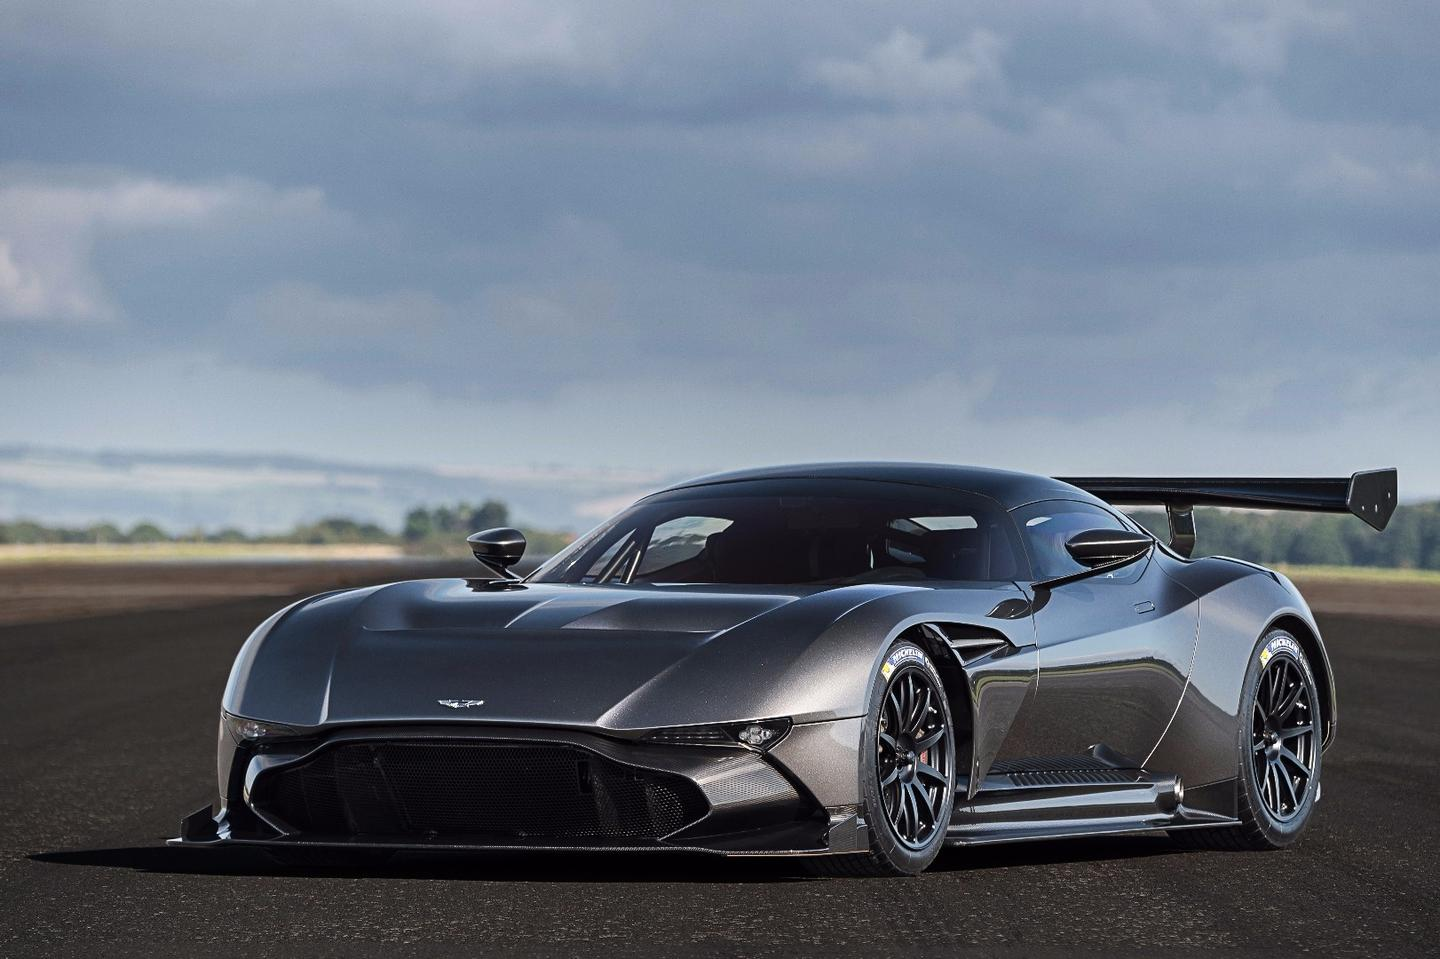 Aston Martin Upgrades The 820 Hp Vulcan With An Amr Pro Package